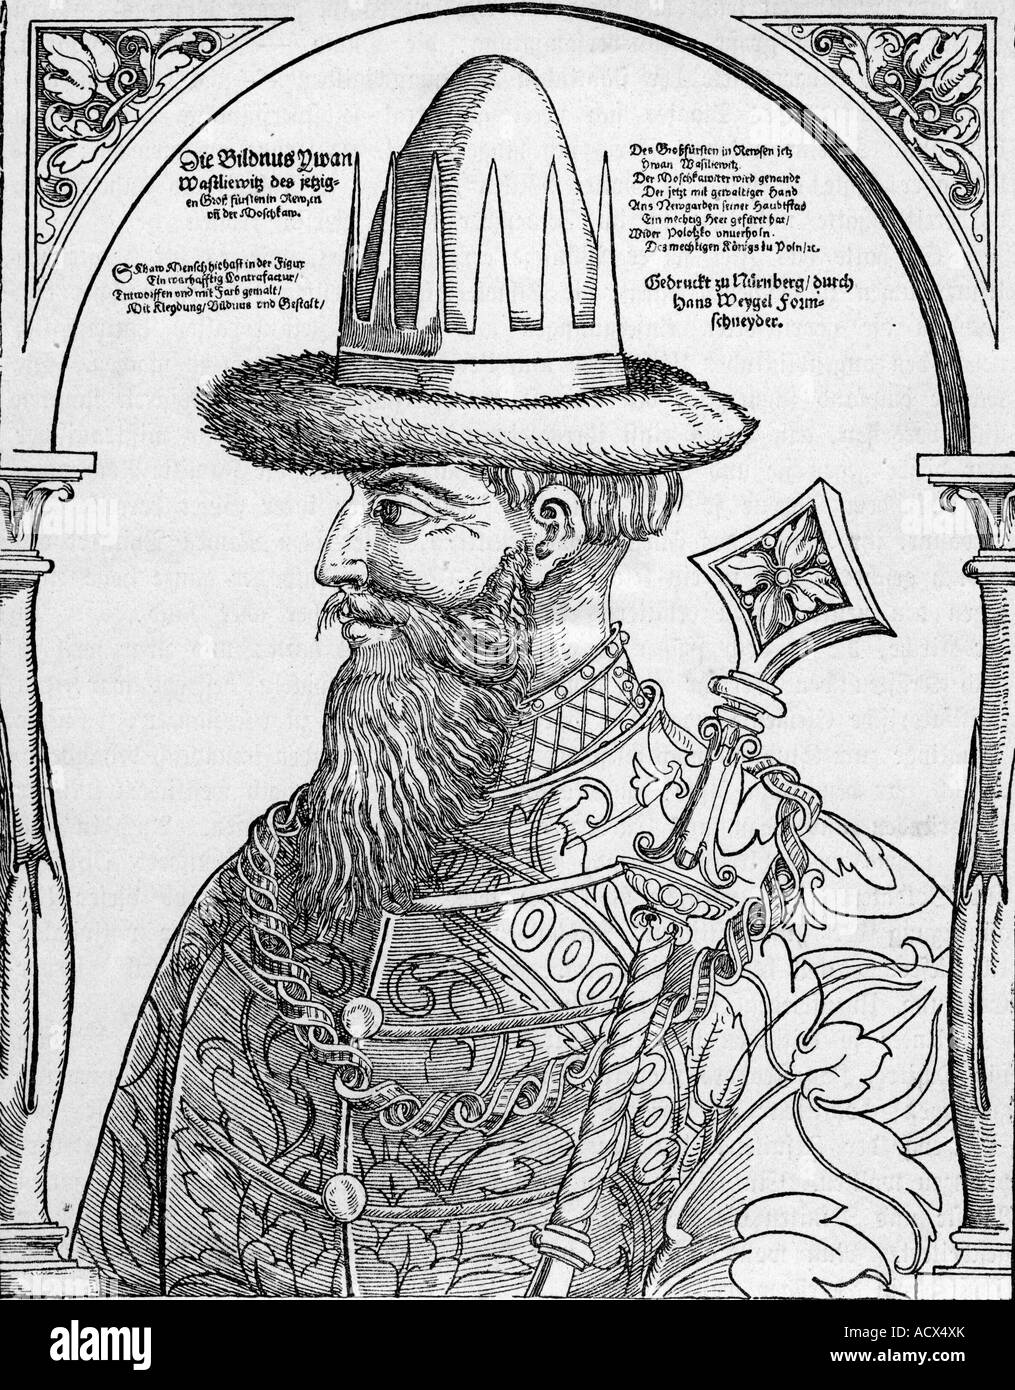 Ivan IV 'the Terrible', 25.8.1530 - 18.3.1584, Emperor of Russia 16.1.1547 - 18.3.1584, portrait, side view, - Stock Image